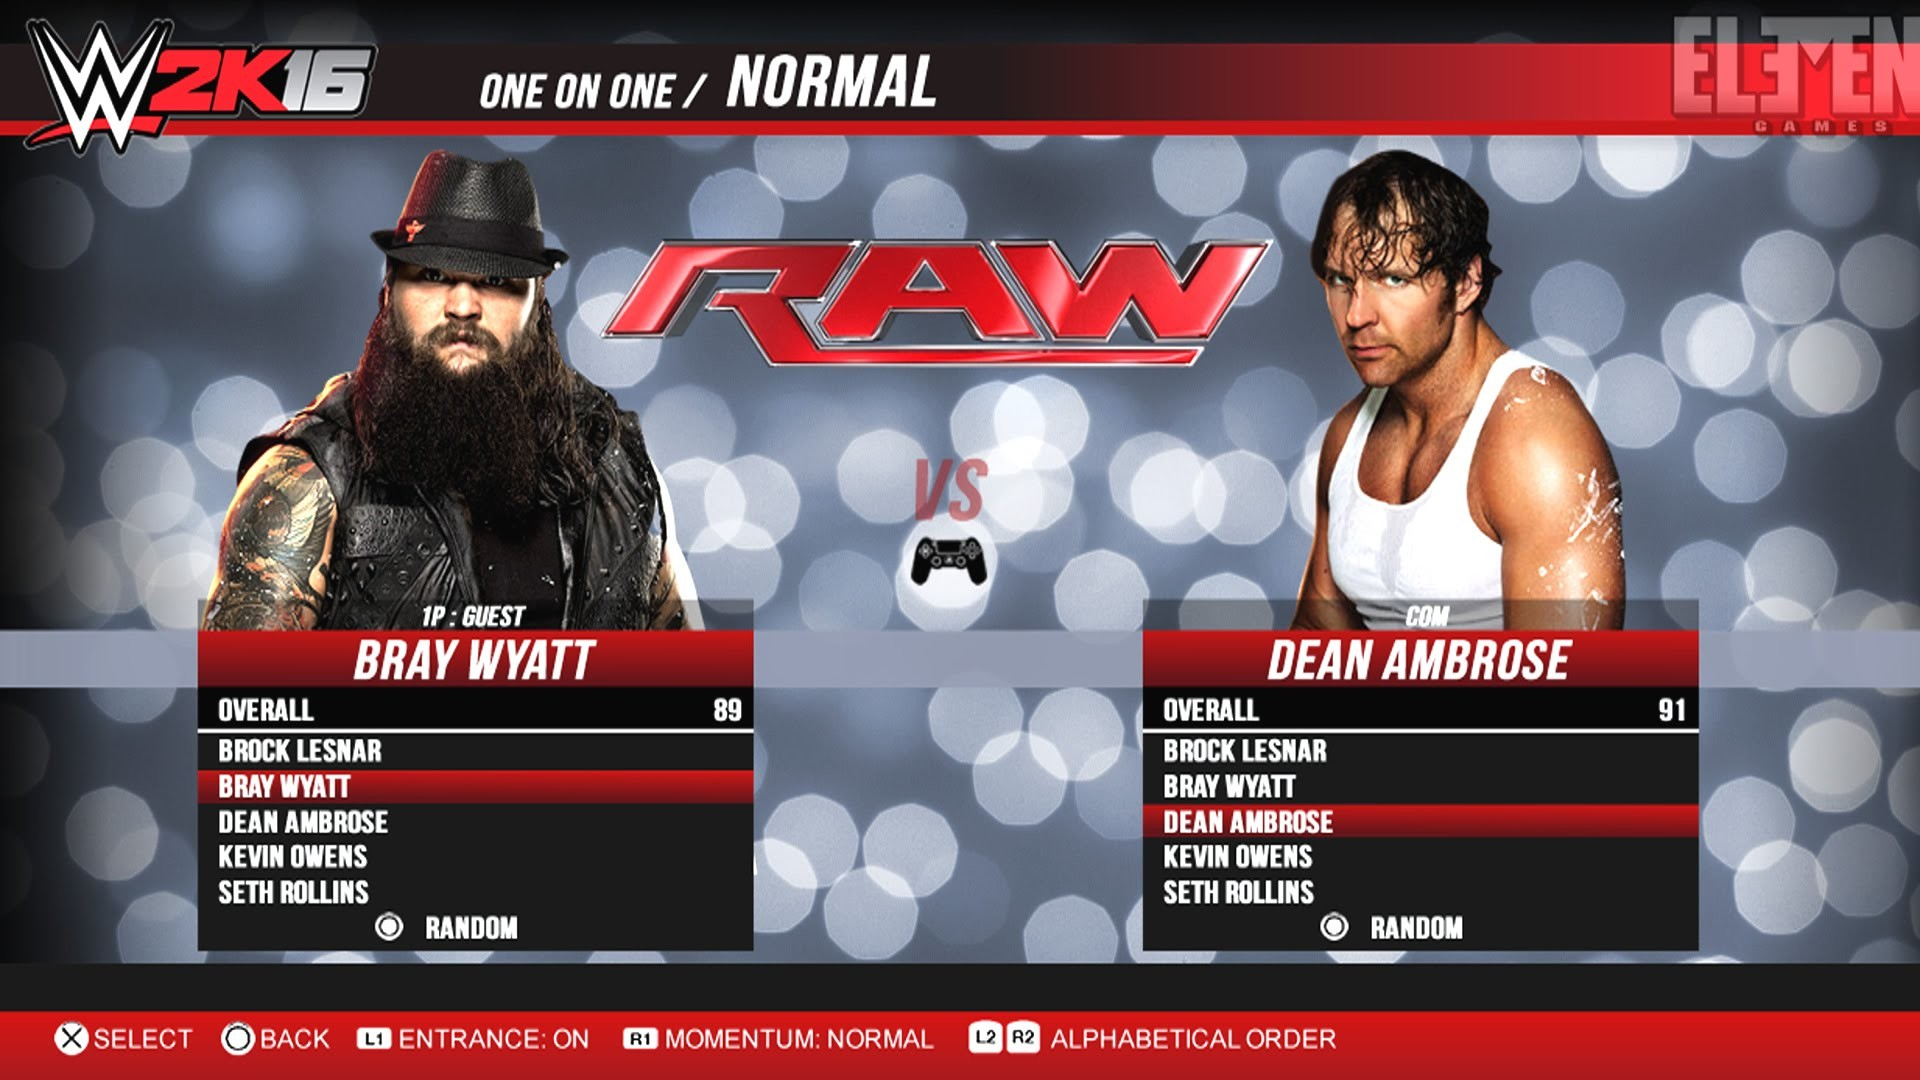 Welcome back to a new WWE video! Watch the fresh, new animations flow as  the lunatic fringe Dean Ambrose takes on the eater of worlds Bray Wyatt in  WWE .